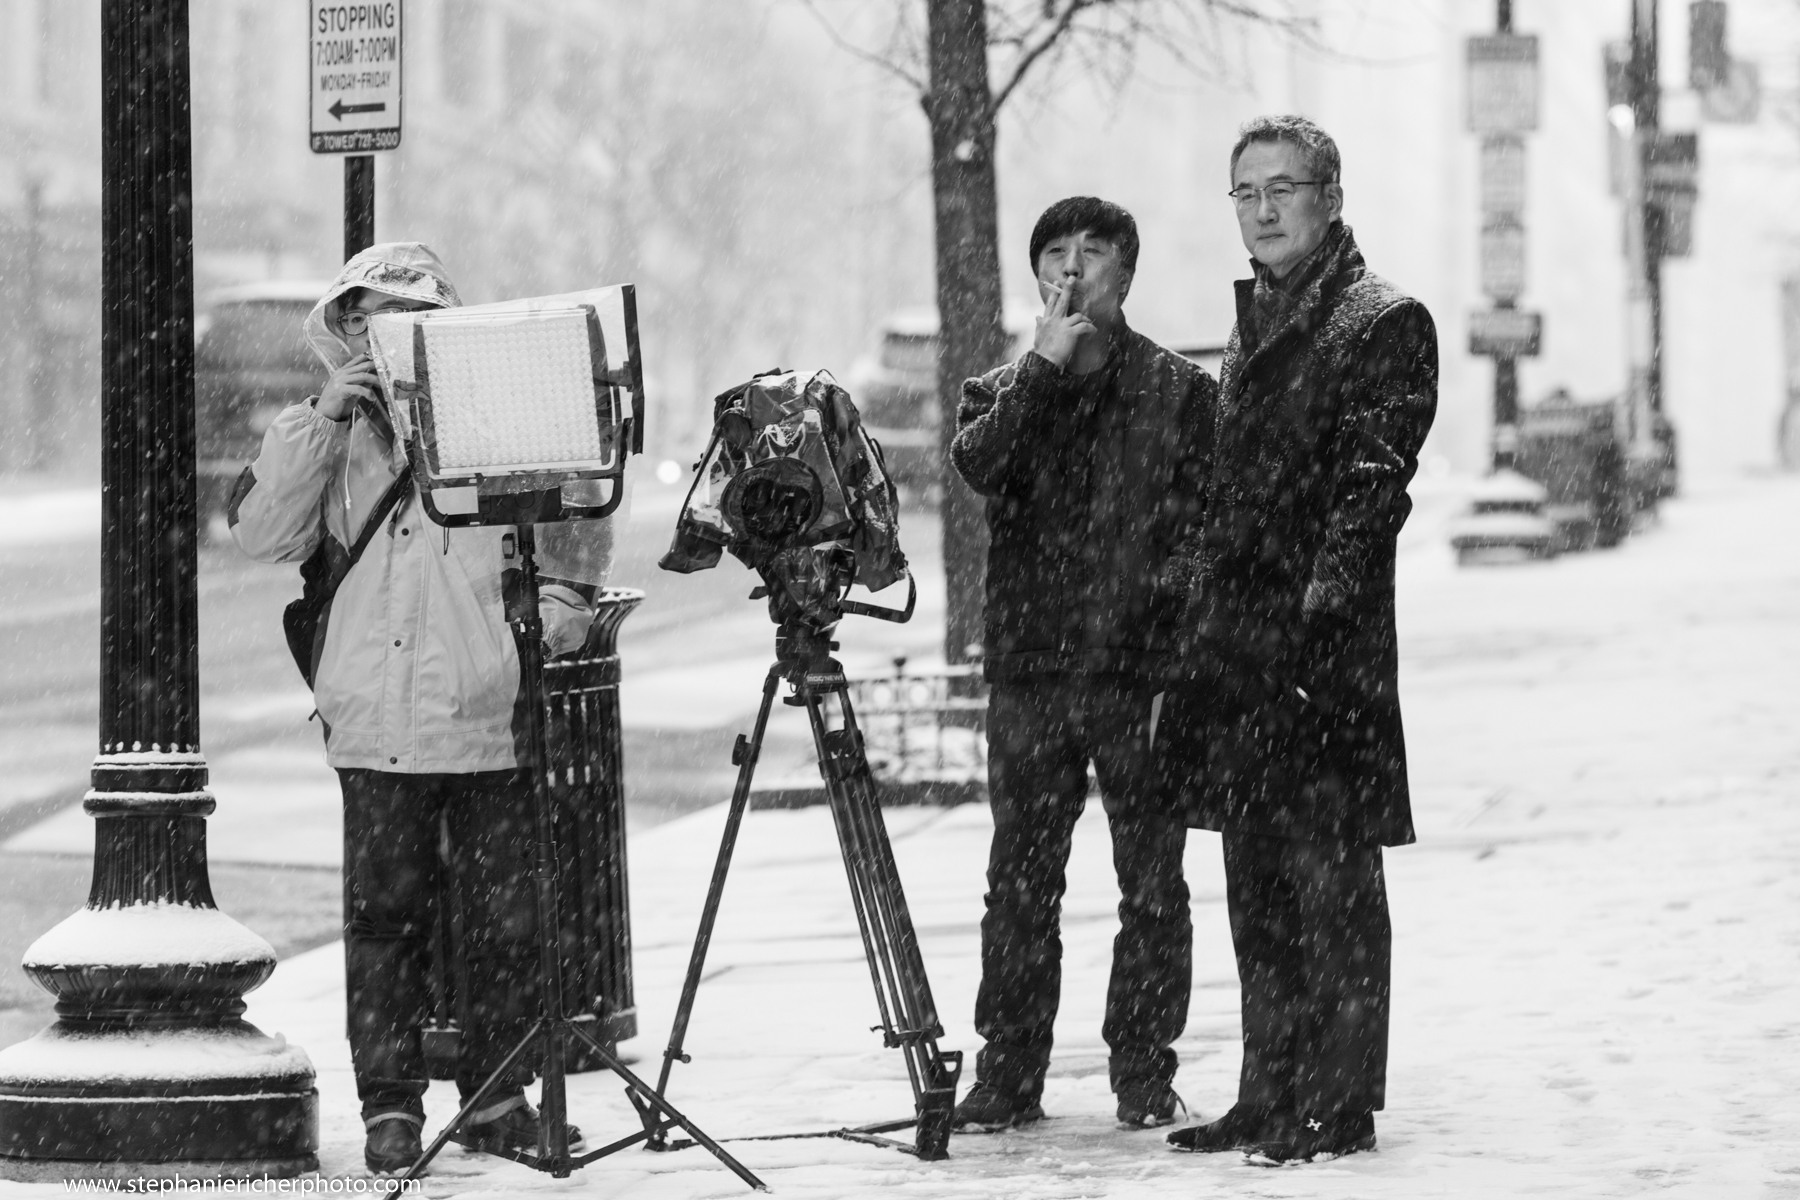 Japanese documentary makers making a documentary about Japanese tourists in America.